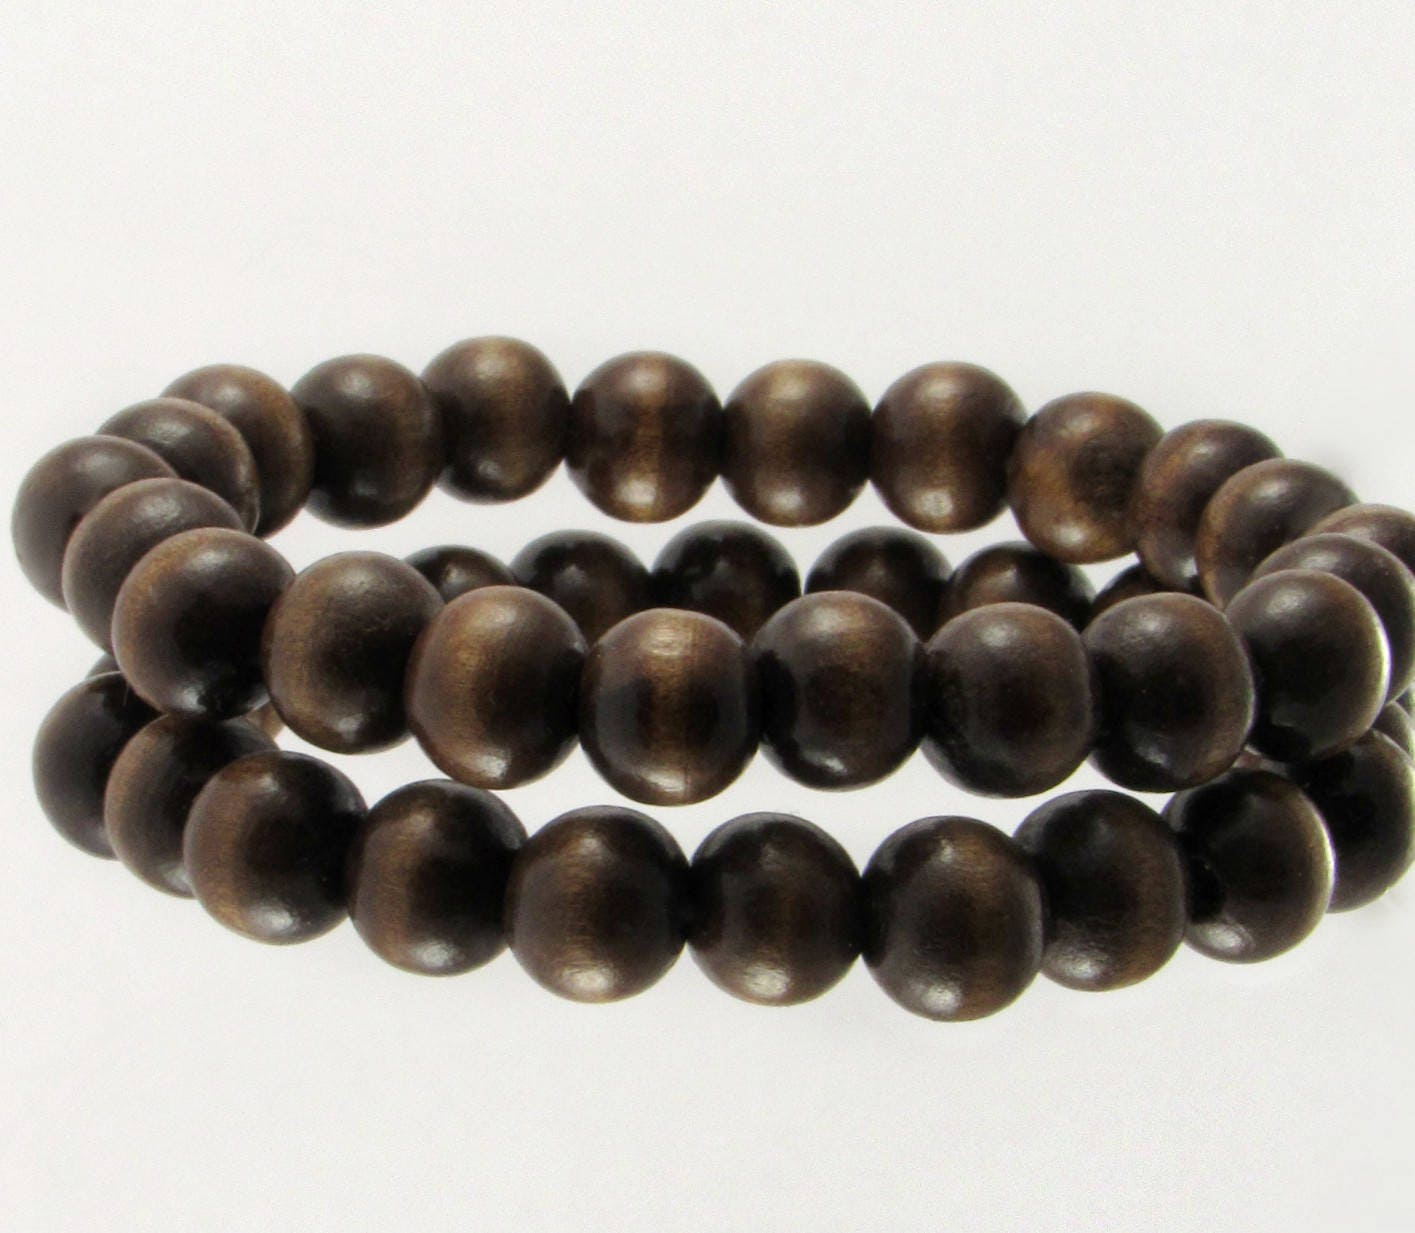 beaded wood buddhist fibo com for amazon necklace mens elastic steel jewelry beads womens bead dp wooden adjustable bracelet